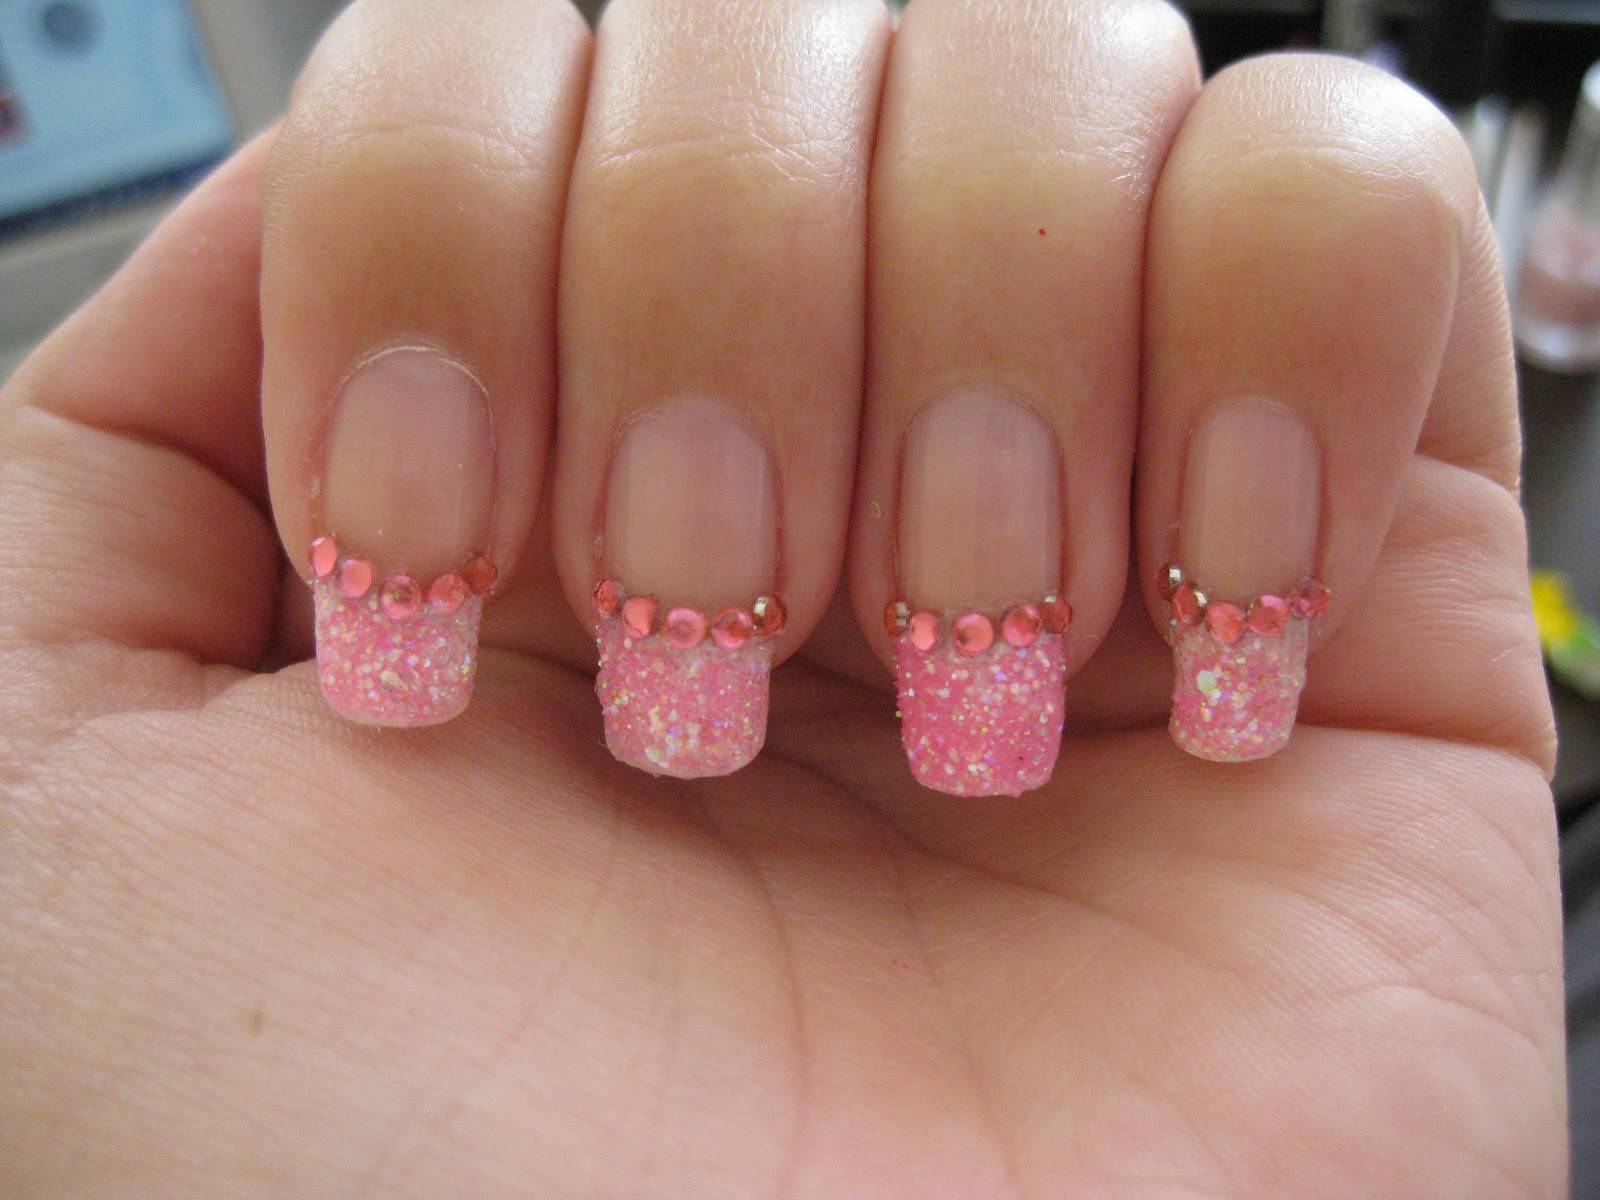 nagels witte rand